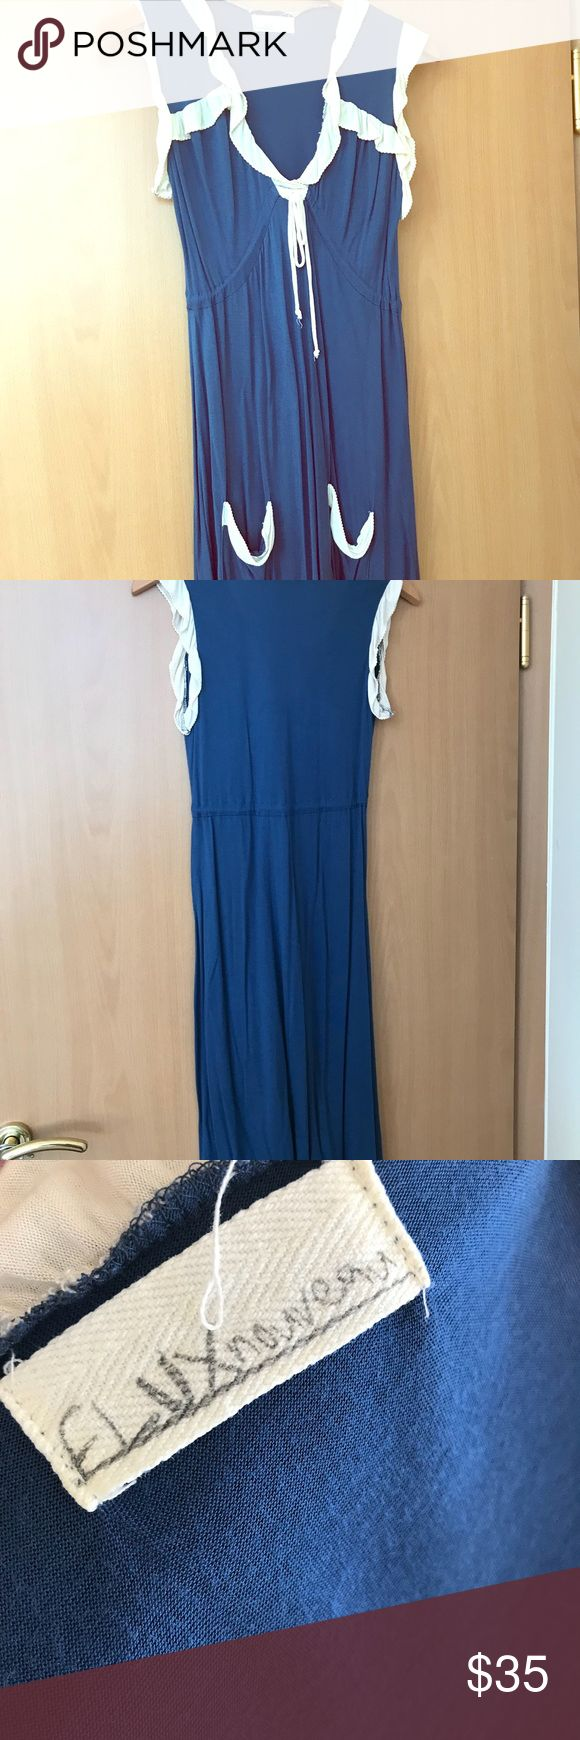 Flux Noveau Size Medium Blue and White Maxi Dress Flux Noveau Size Medium Blue and White Maxi Dress Two pockets located below the hips Front tie for accentuation of curves 100% MicroModal Worn once or twice, excellent condition Flux Noveau Dresses Maxi